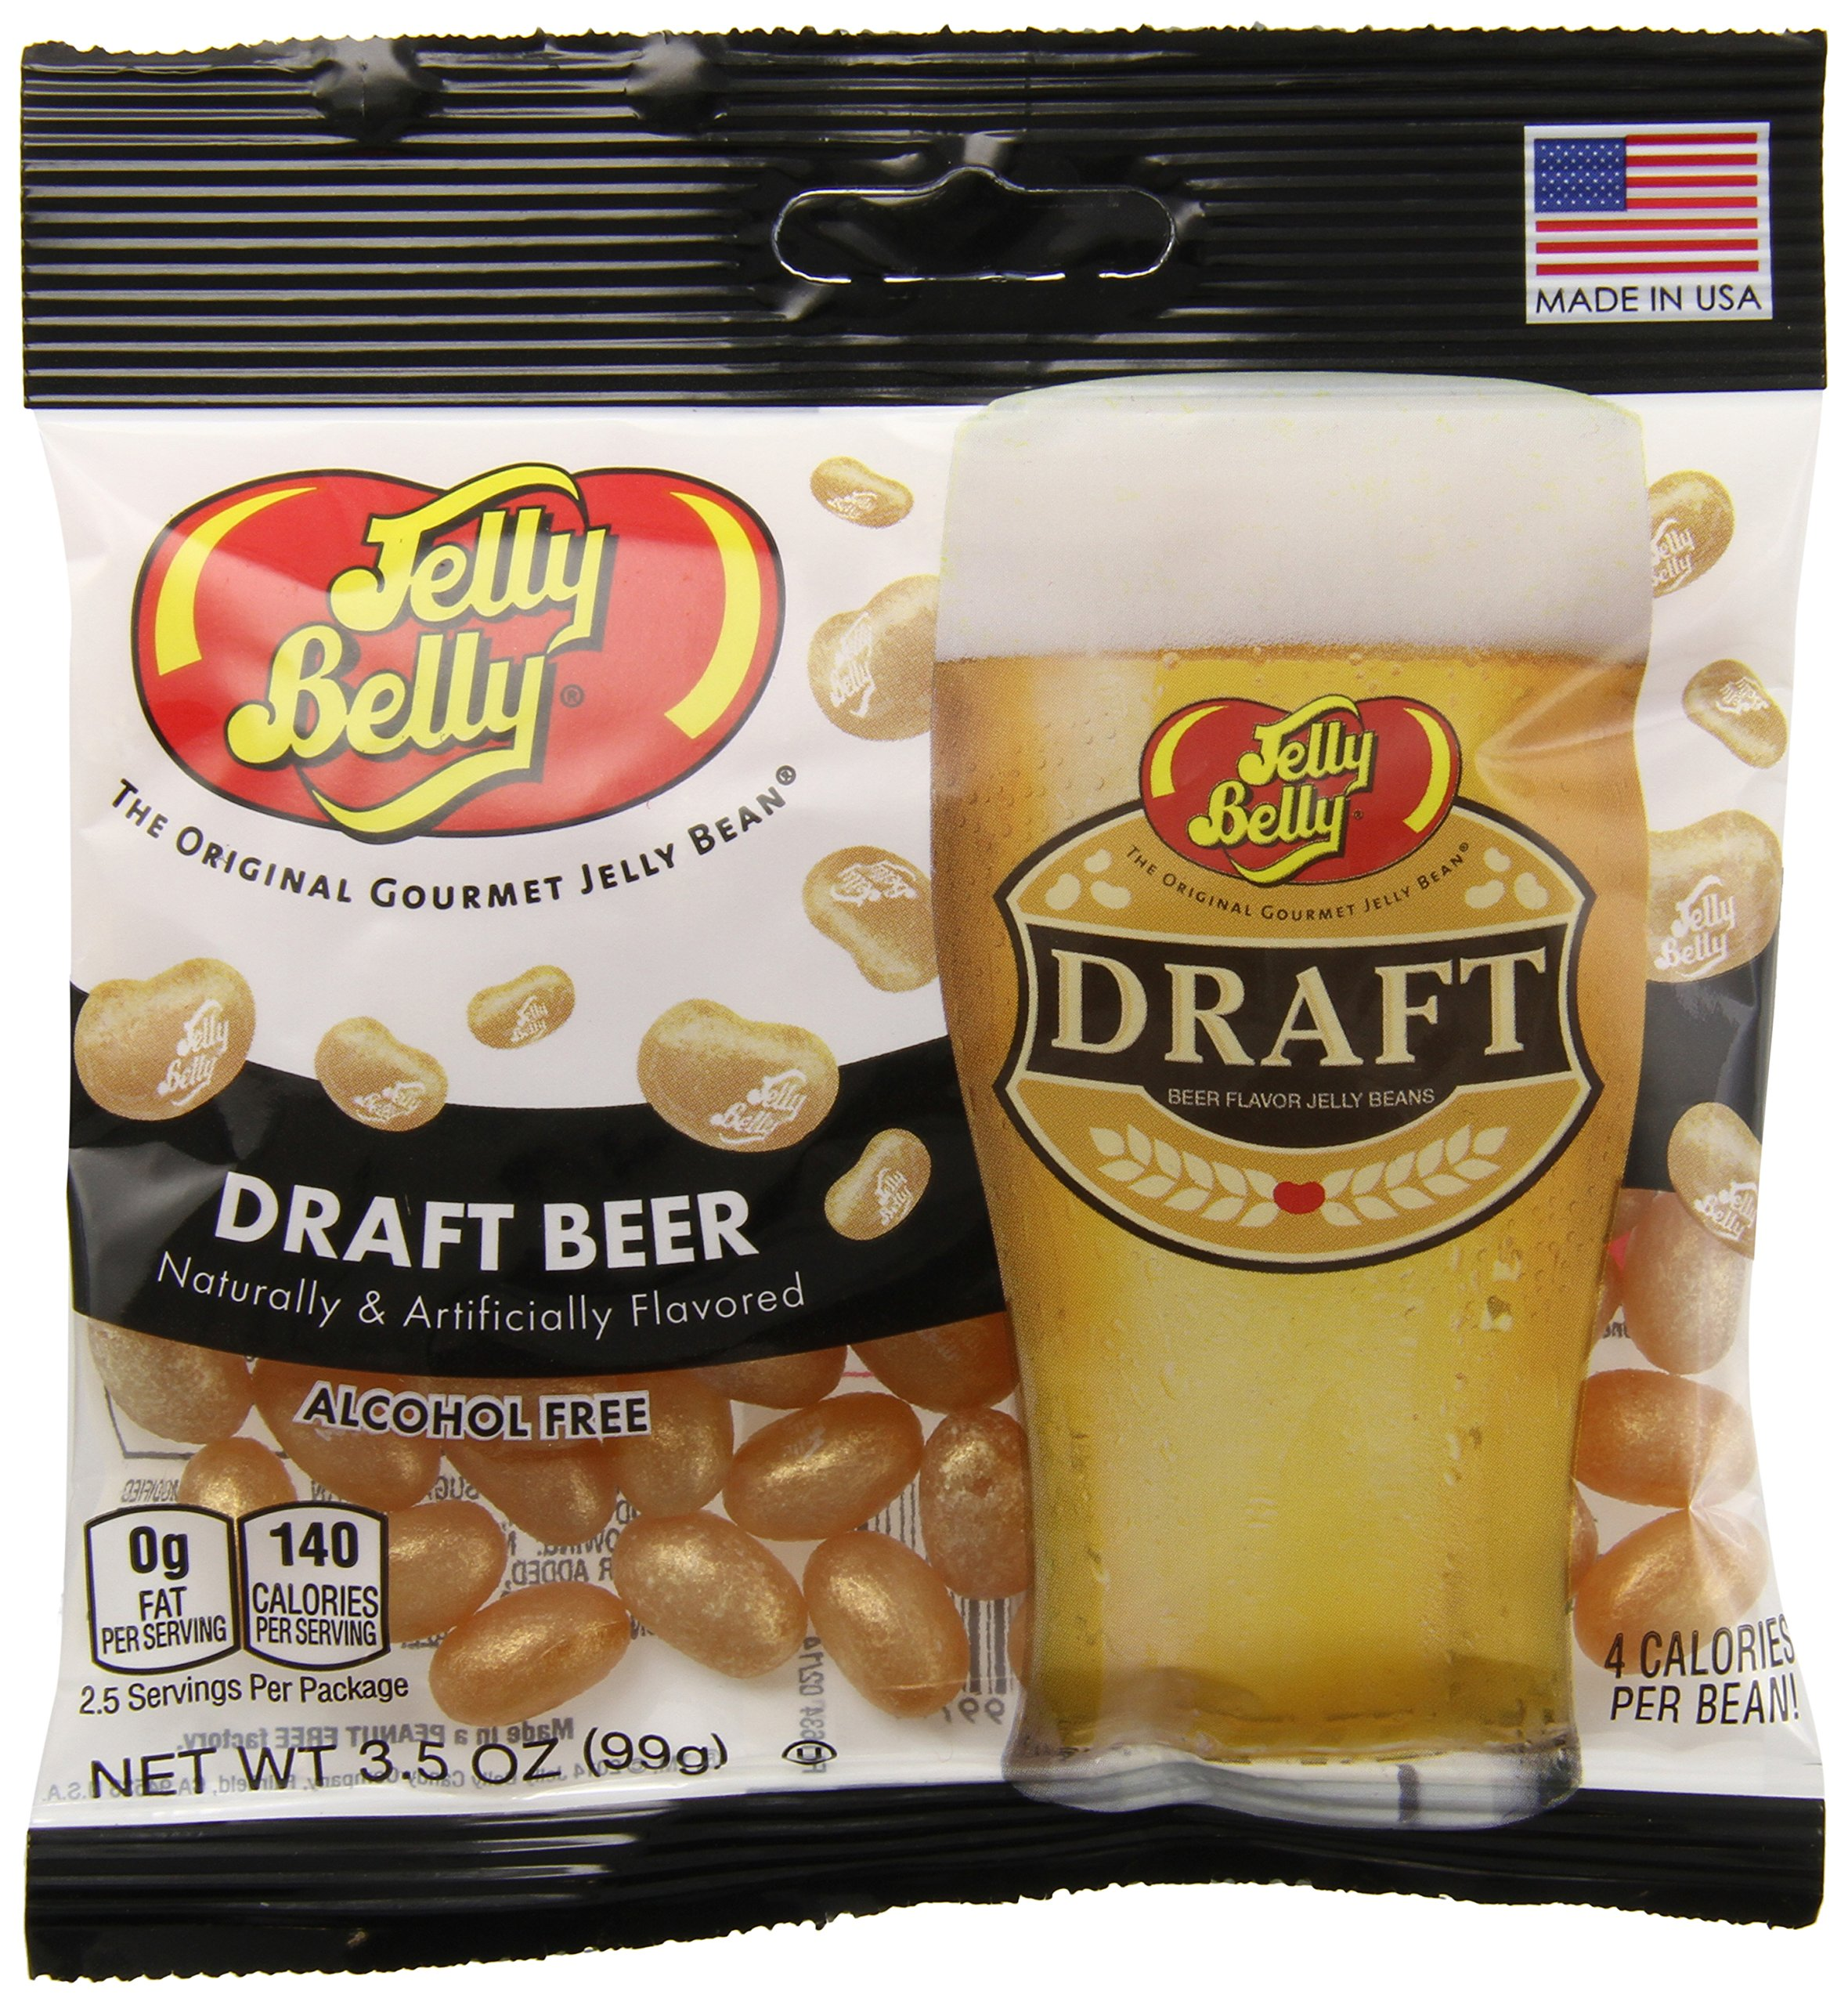 Jelly Belly Draft Beer Jelly Beans, 3.5-oz, 12 Pack by Jelly Belly